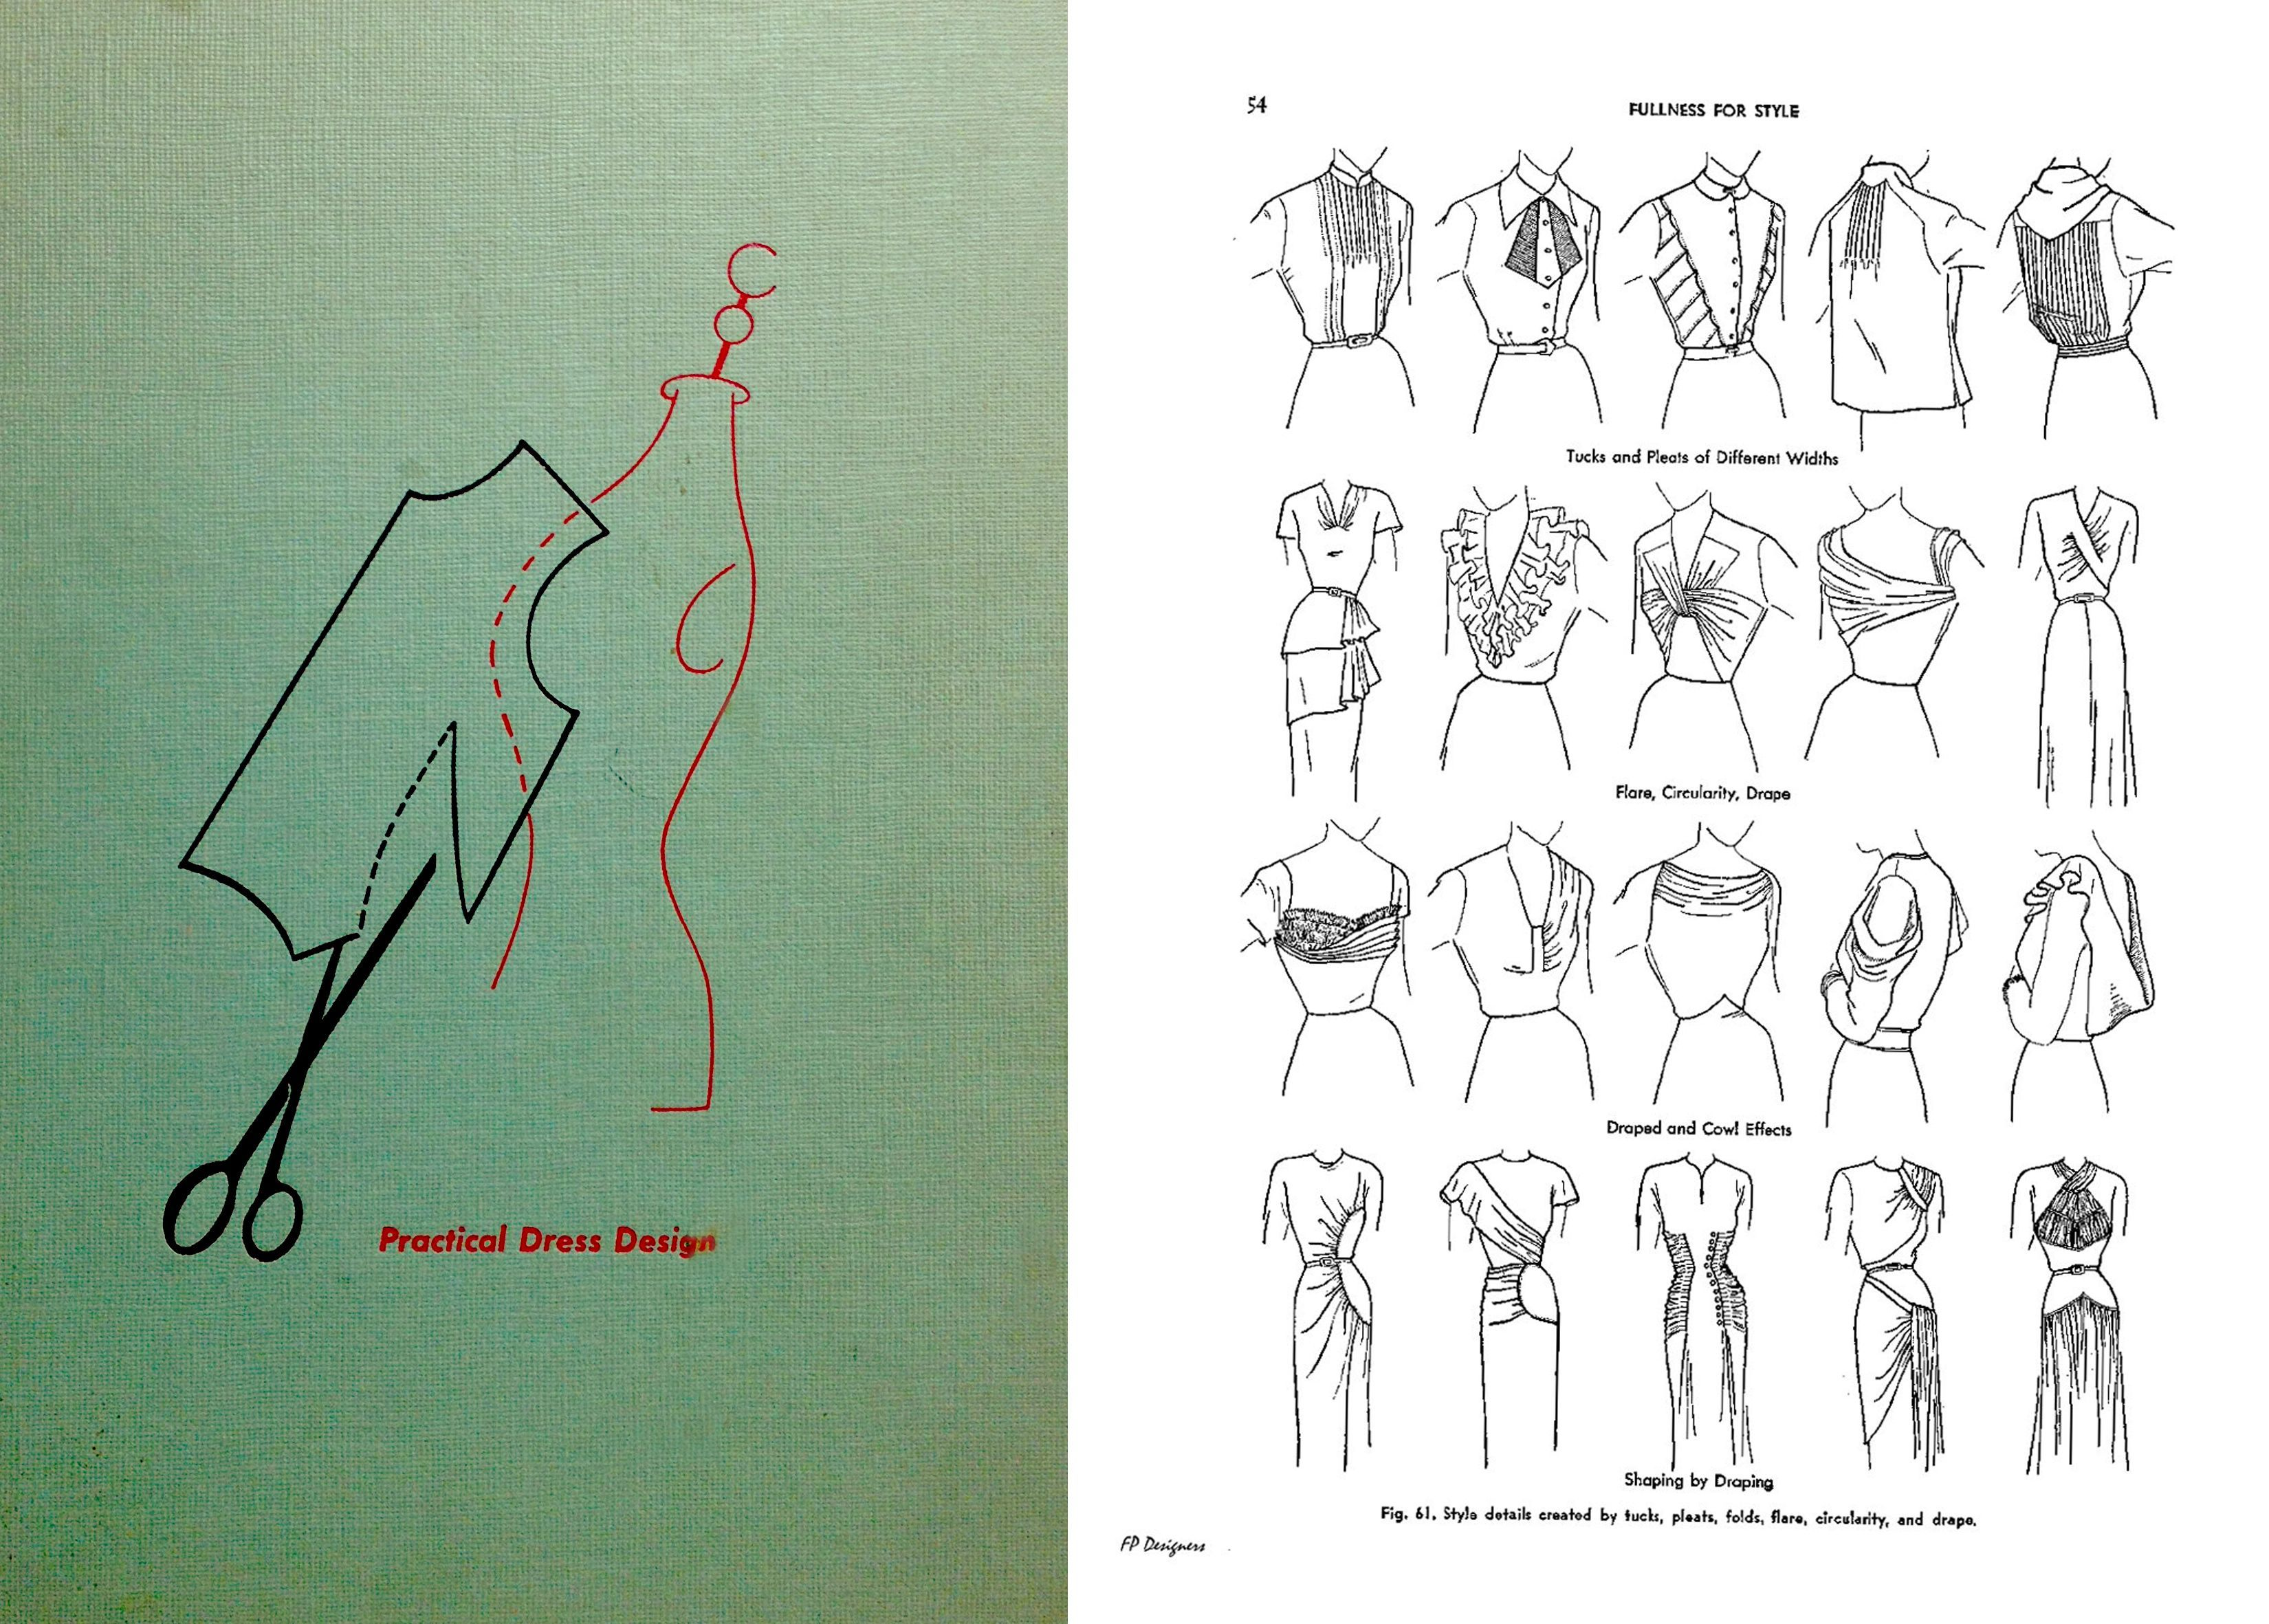 Free Download Practical Dress Design By Mabel D Erwin 1950's Fashion  Sewing Draping Pattern